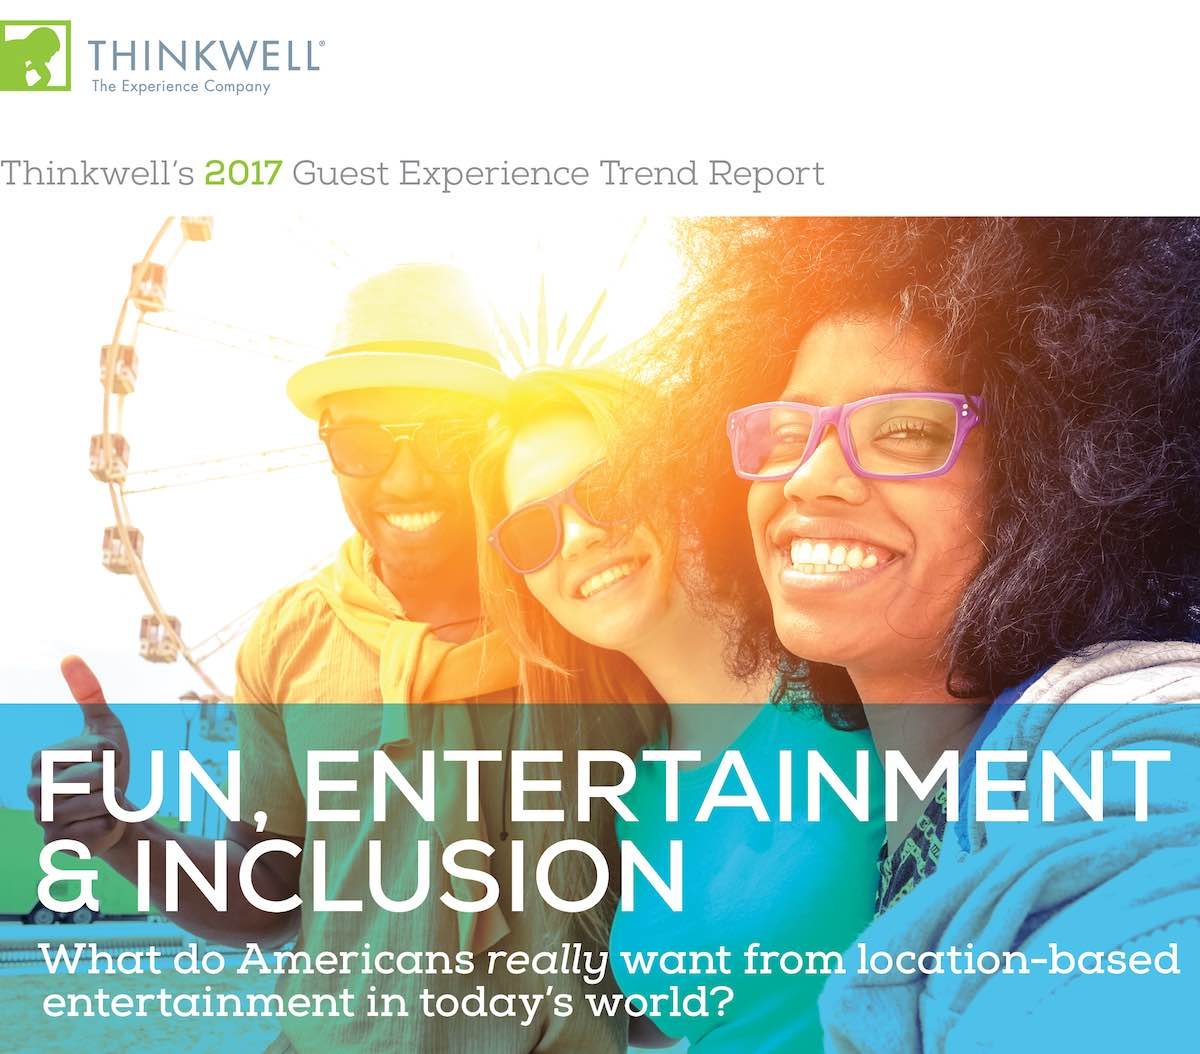 thinkwell 2017 Guest Experience Trend Report cover